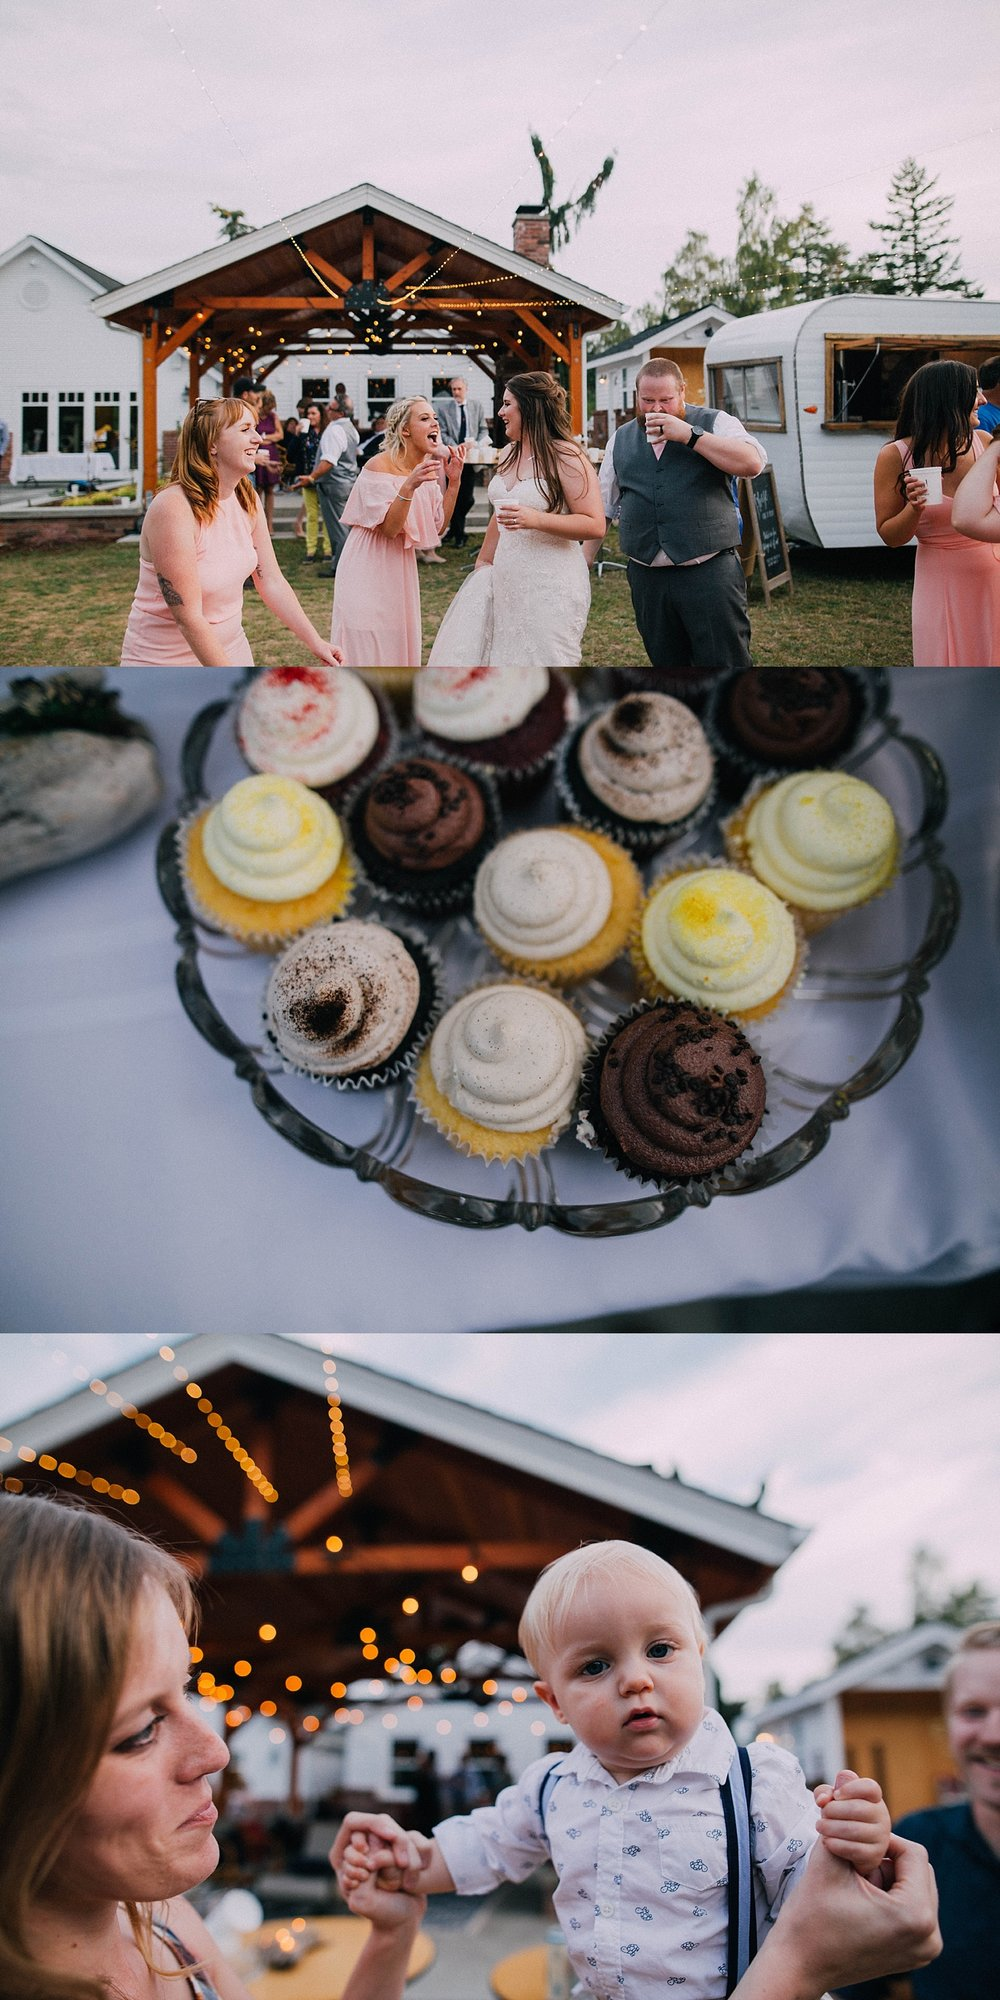 karisa ryan - vashon island backyard wedding photographer - seattle area backyard wedding photography - ashley vos-29.jpg